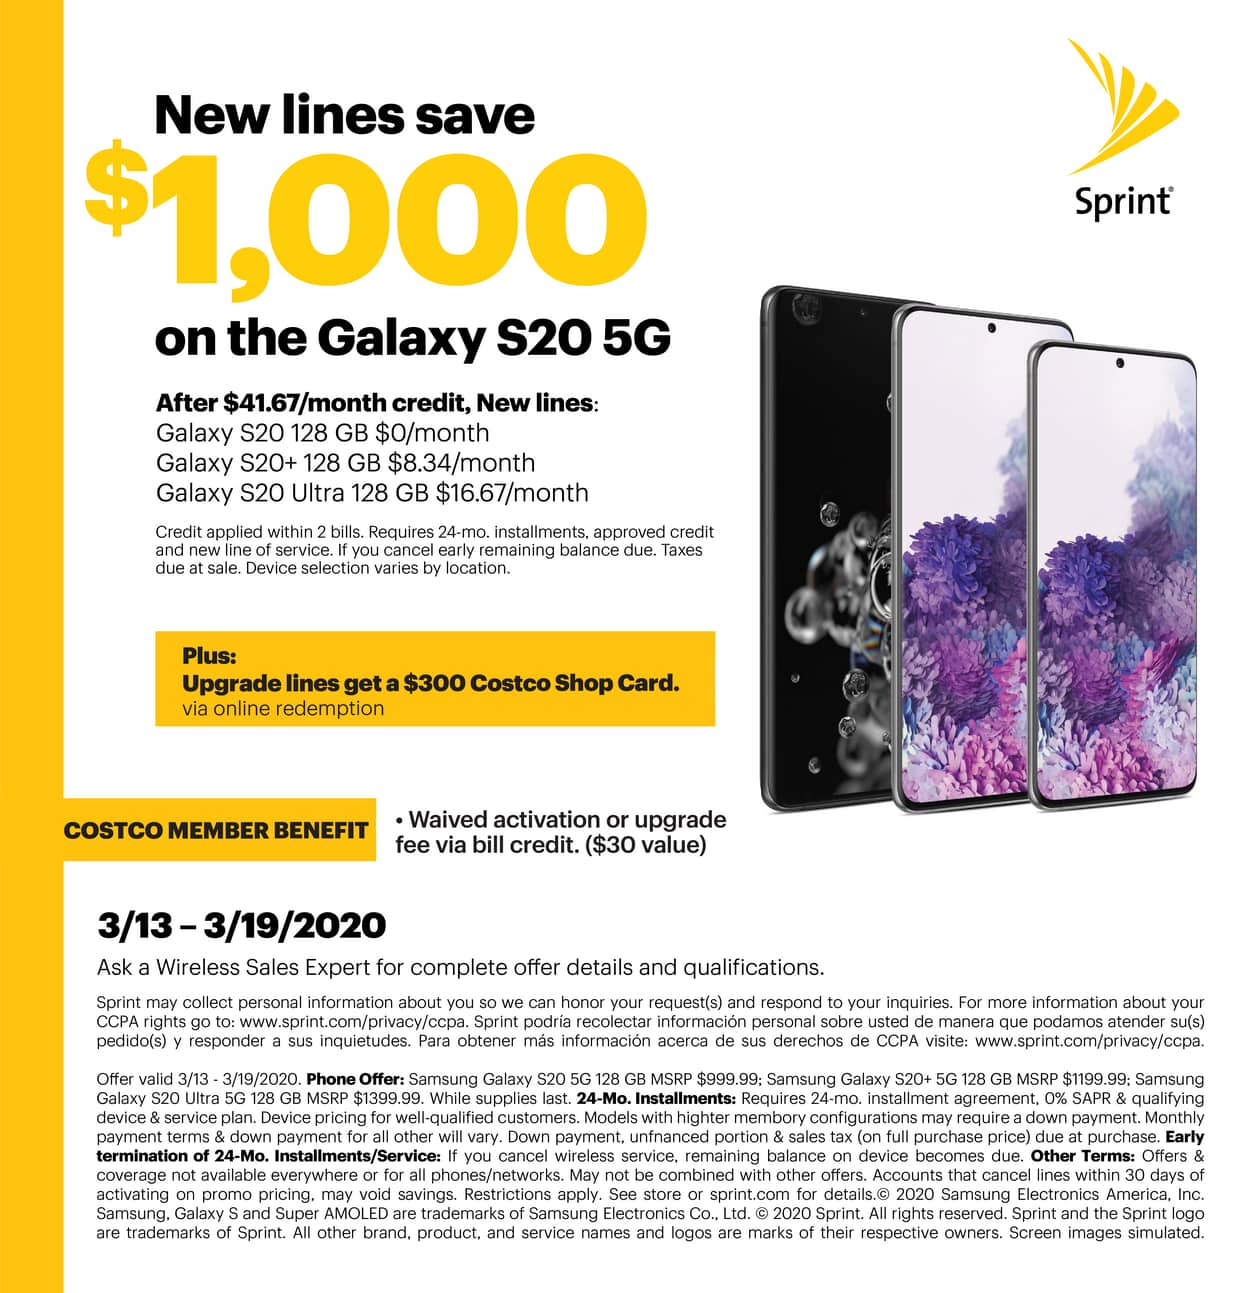 Costco Sprint - FREE Galaxy S20 with new line / $300 Costco GC with upgrade + No activation fee